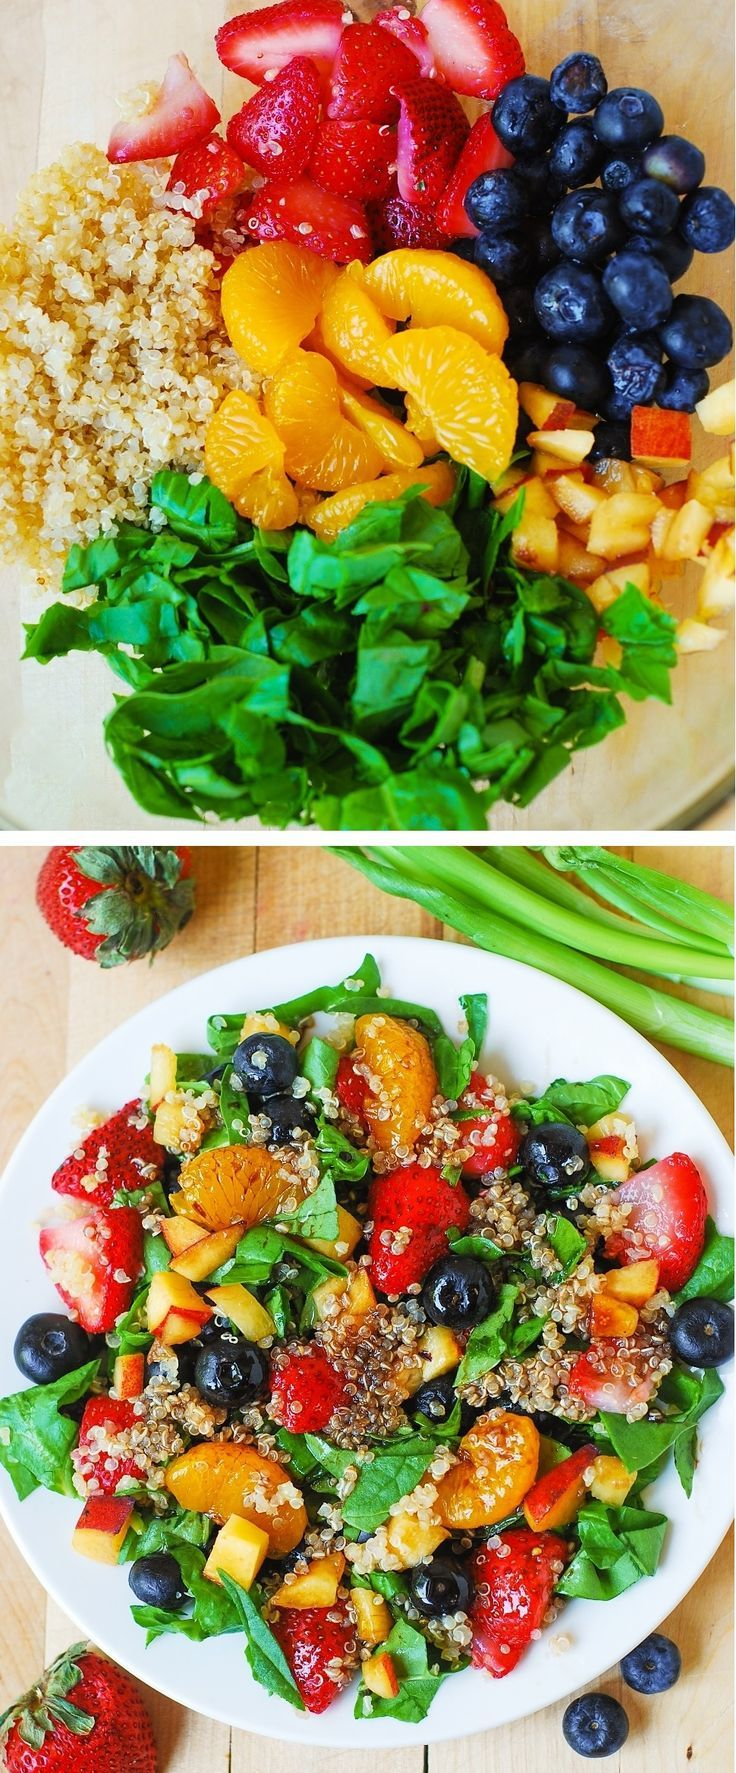 439 Best Images About Quinoa Salad Recipes On Pinterest  Kale, Dressing  And Quinoa Bowl